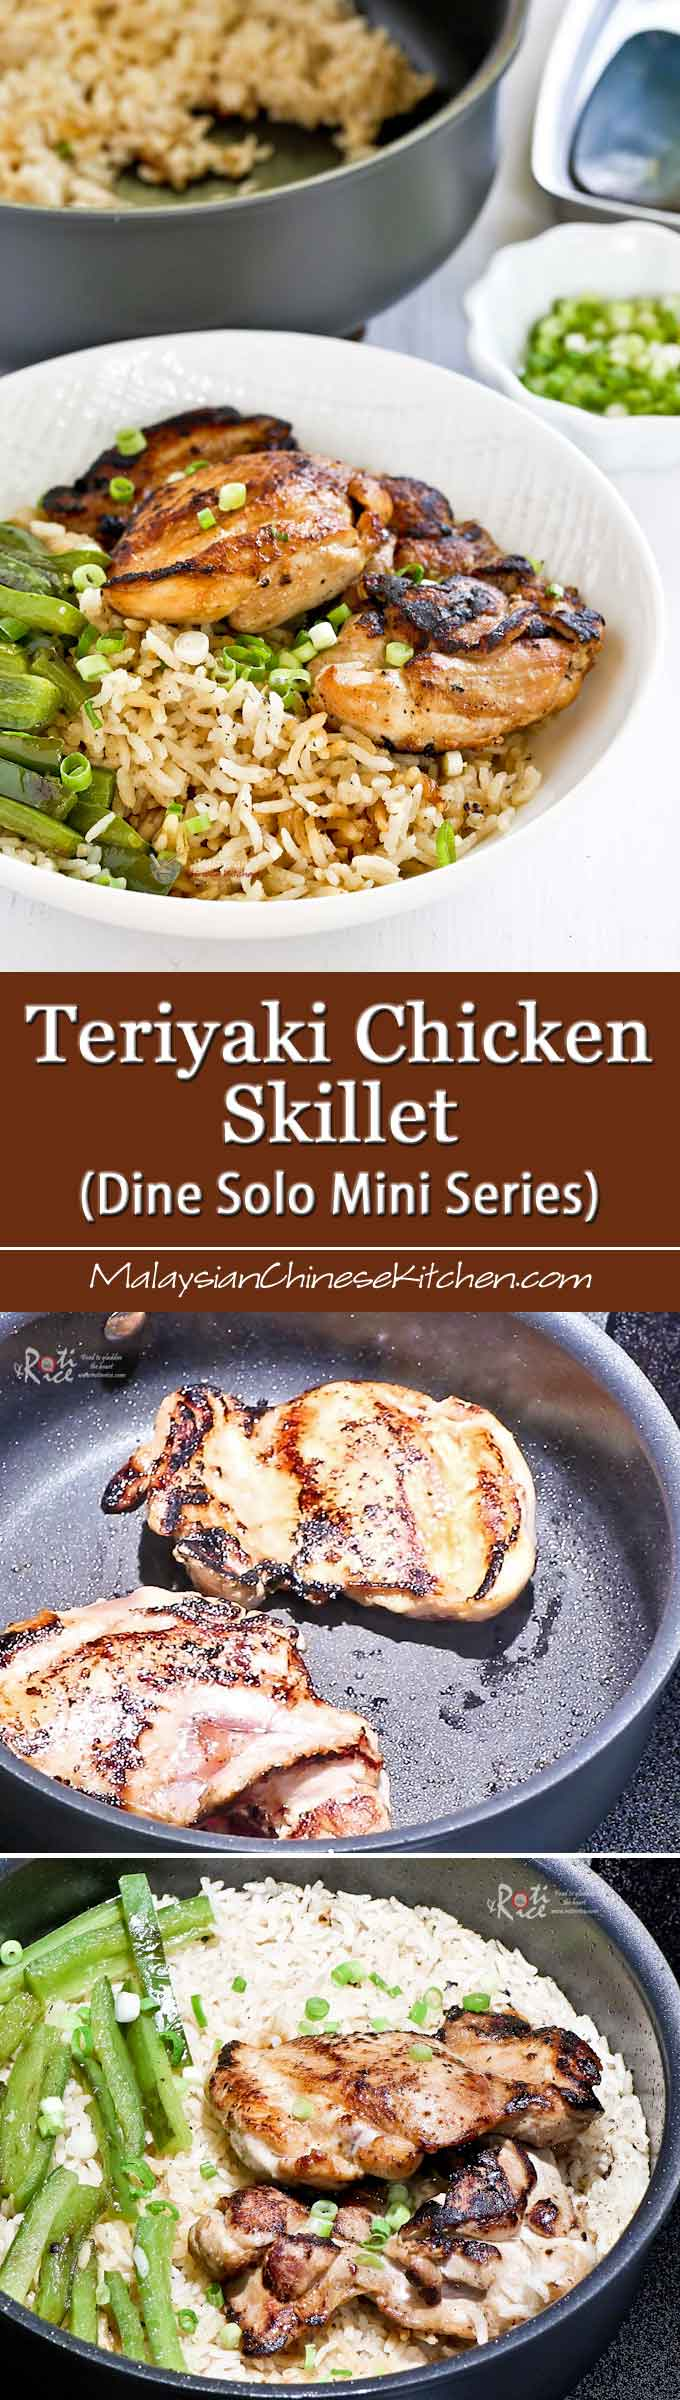 This Teriyaki Chicken Skillet uses simple ingredients yet is full of flavor. Designed for the single adult but can be easily multiplied to feed a family. | MalaysianChineseKitchen.com